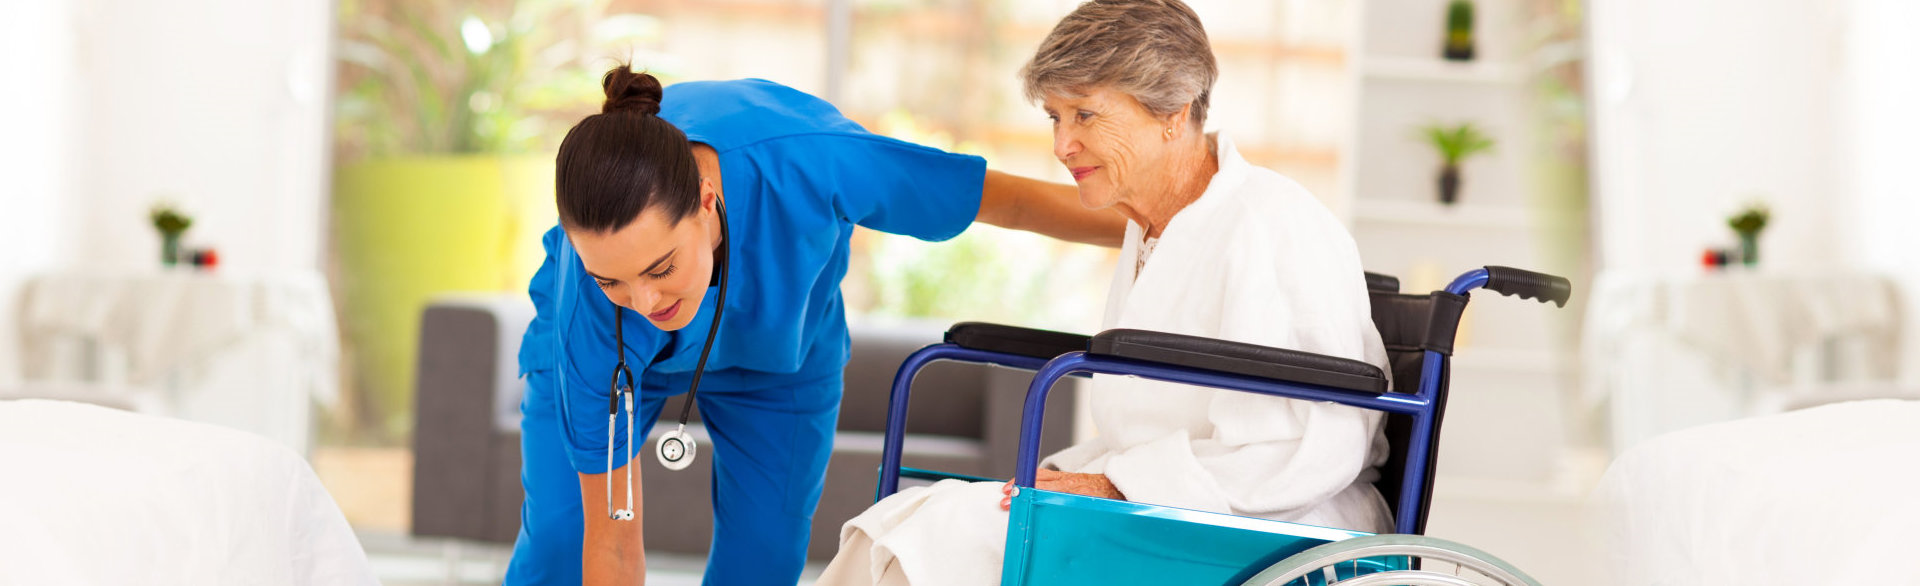 caretaker and her patient on wheelchair